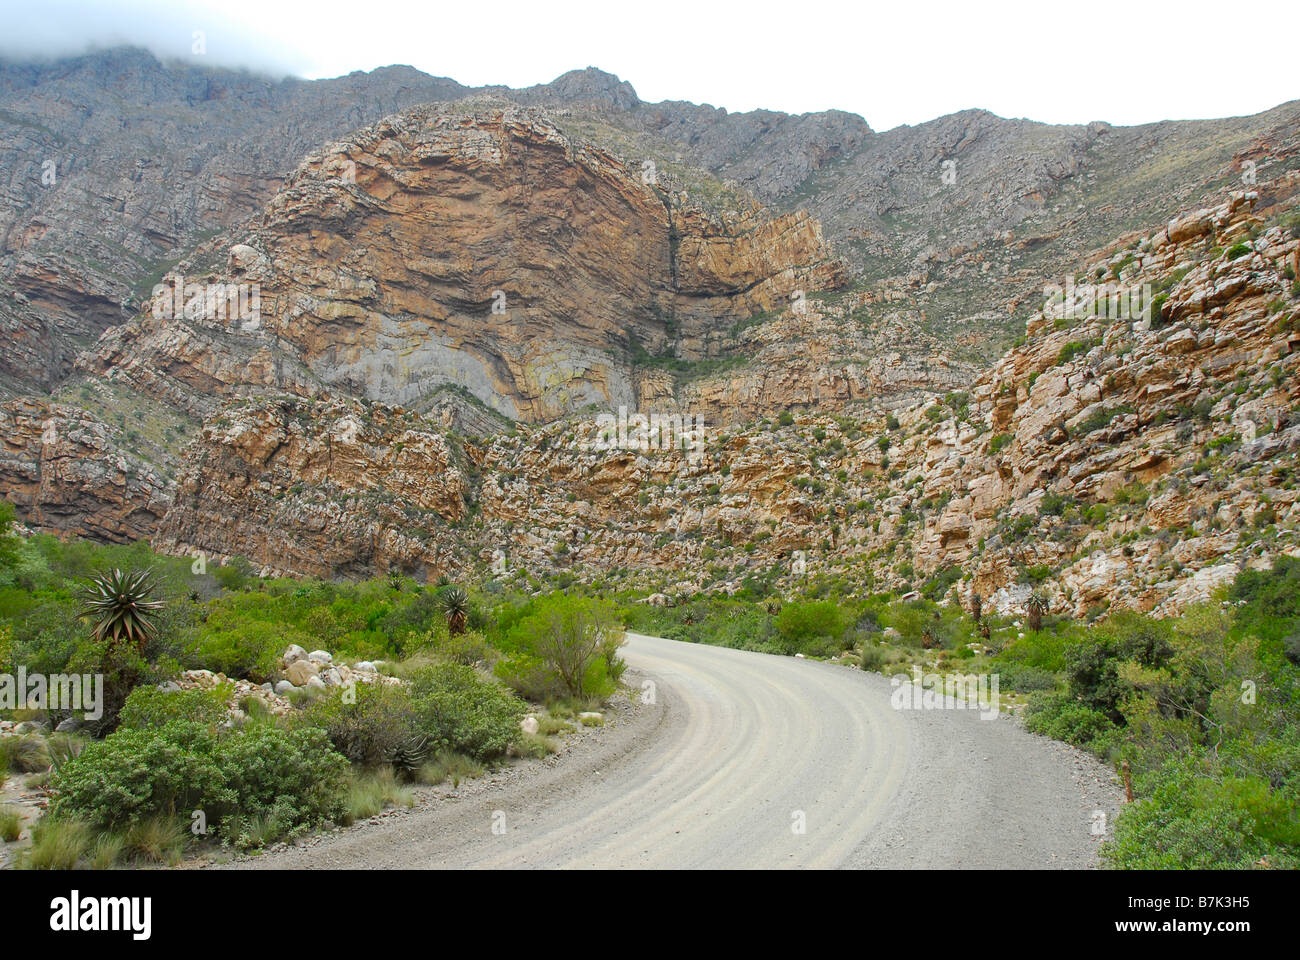 Cape Fold mountains in background, Seweweeks poort, near Oudtshoorn in the Klein Karoo, South Africa - Stock Image